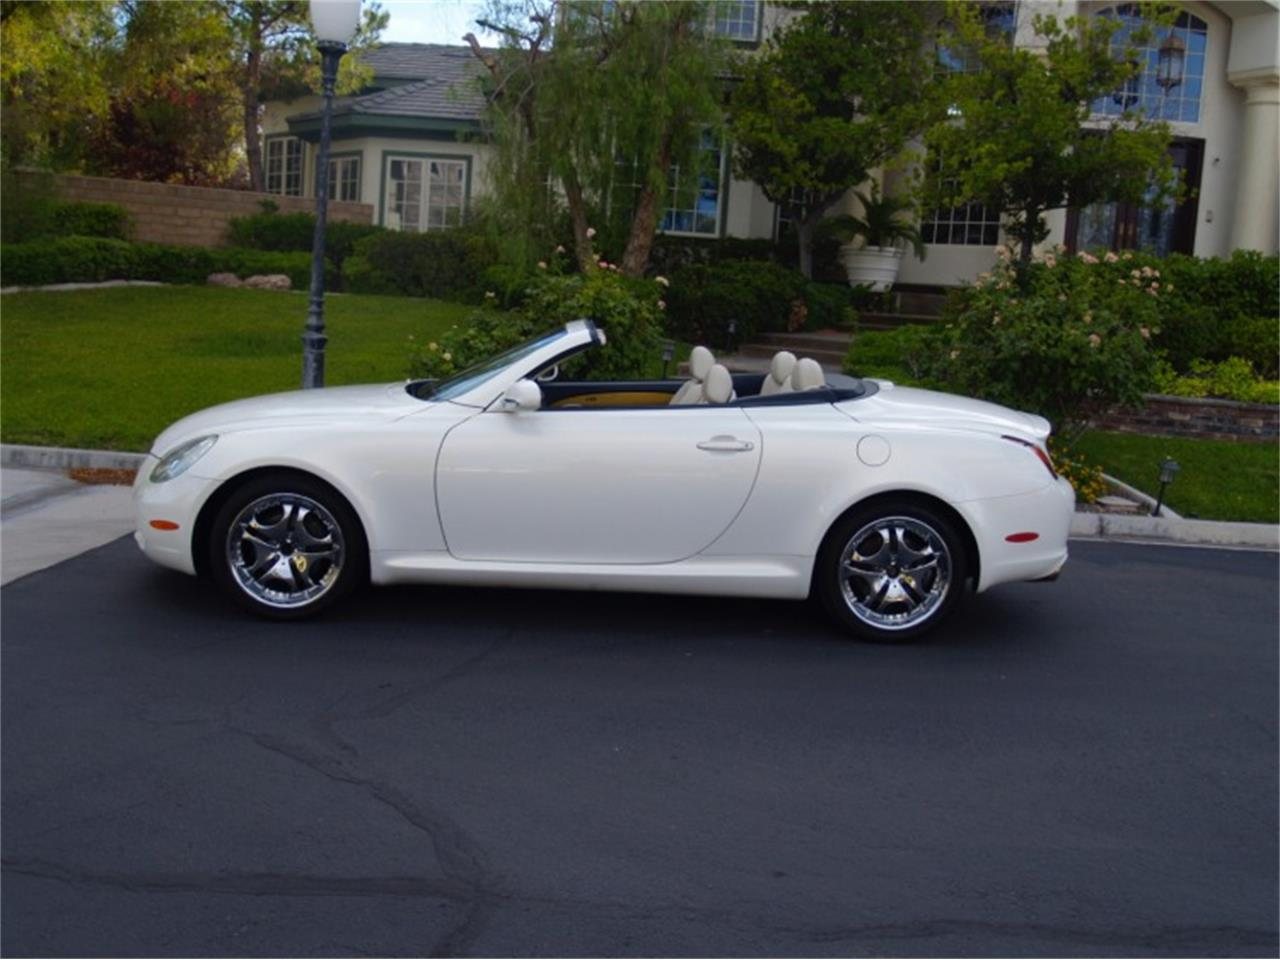 2004 Lexus SC430 (CC-1236904) for sale in Sparks, Nevada